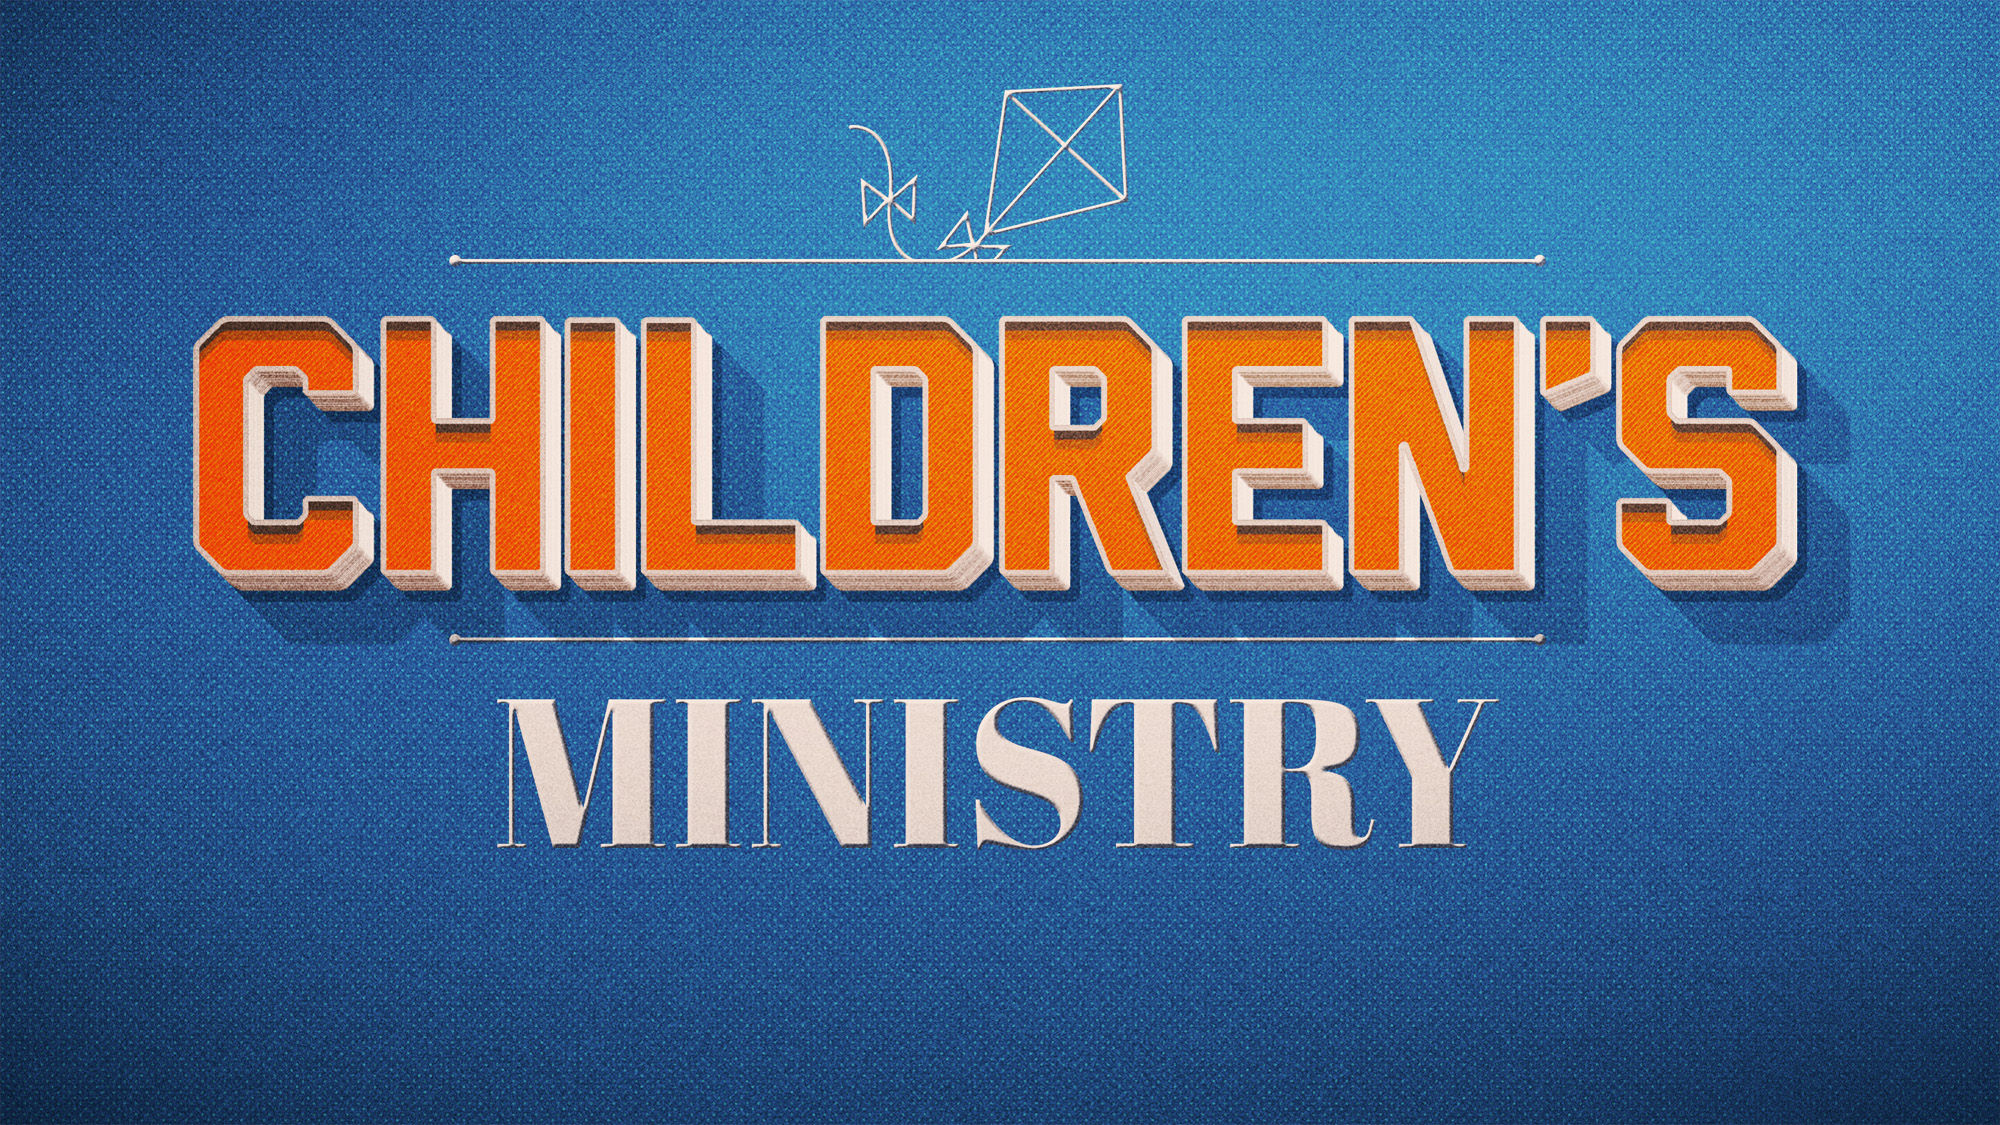 ministry_set_children_s_ministry-title-2-Wide 16x9.jpg